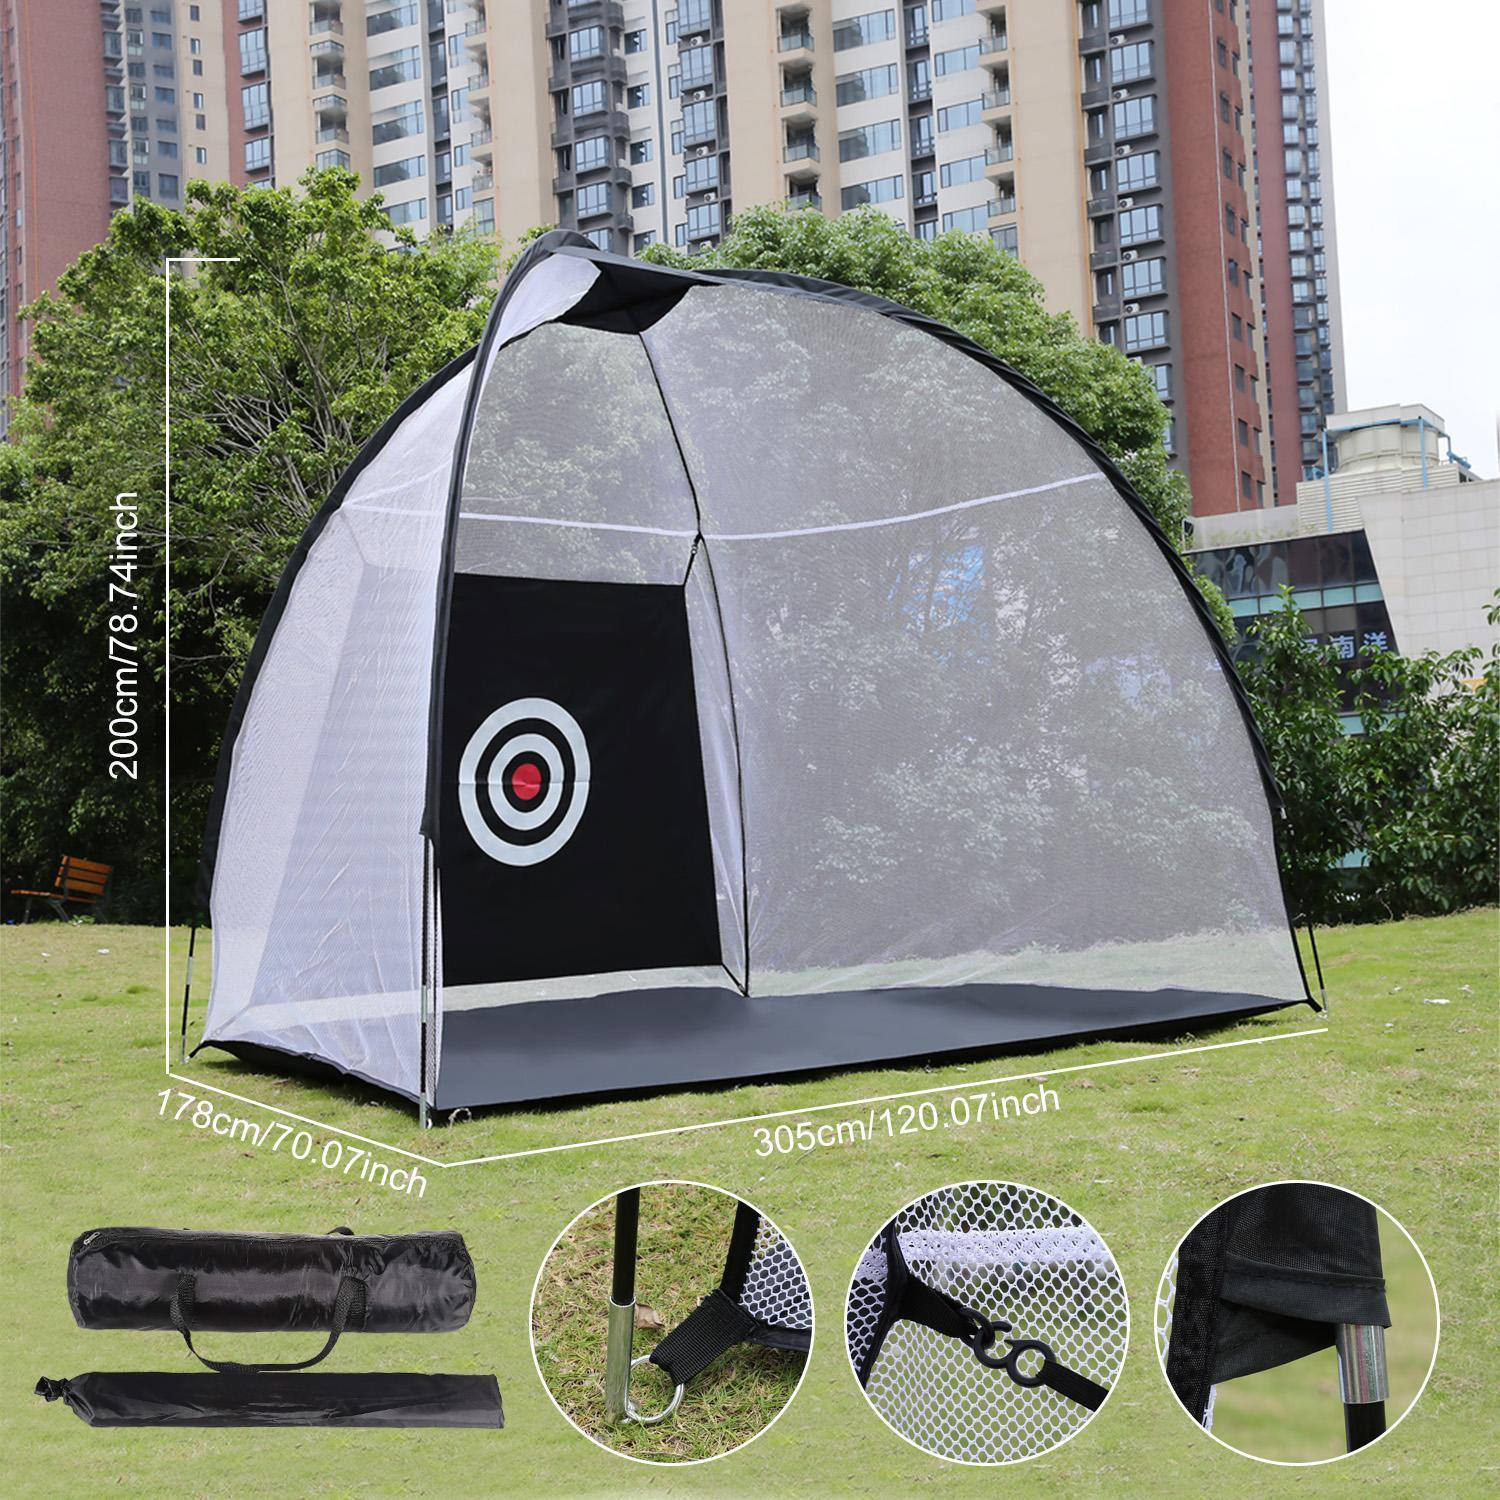 Portable Golf Net with Chipping Target and Carry Bag Large Size 5